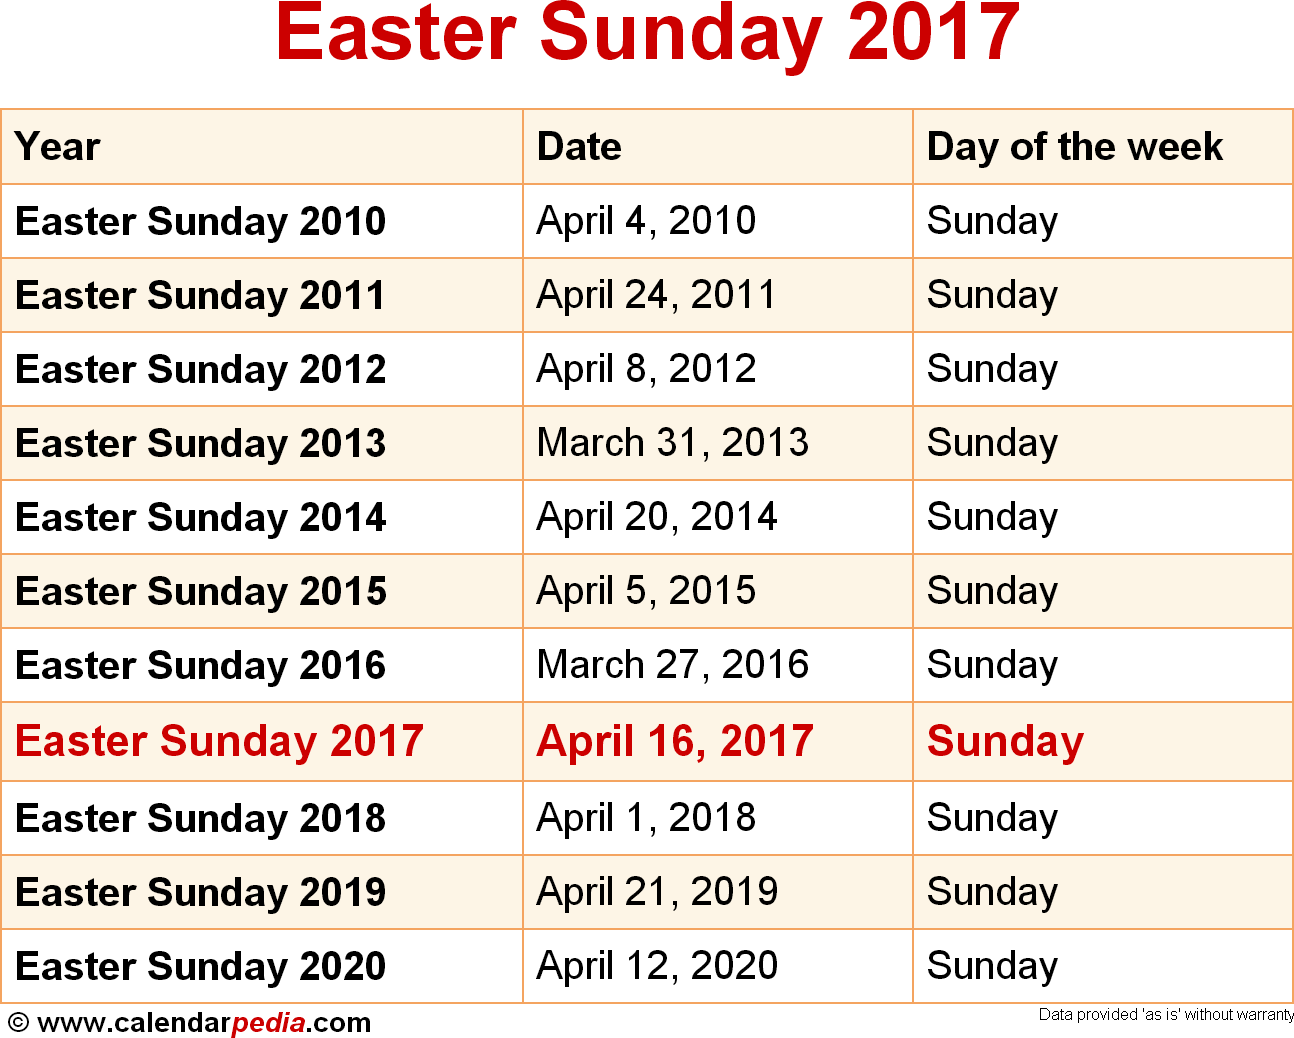 When is Easter Sunday 2017 & 2018? Dates of Easter Sunday